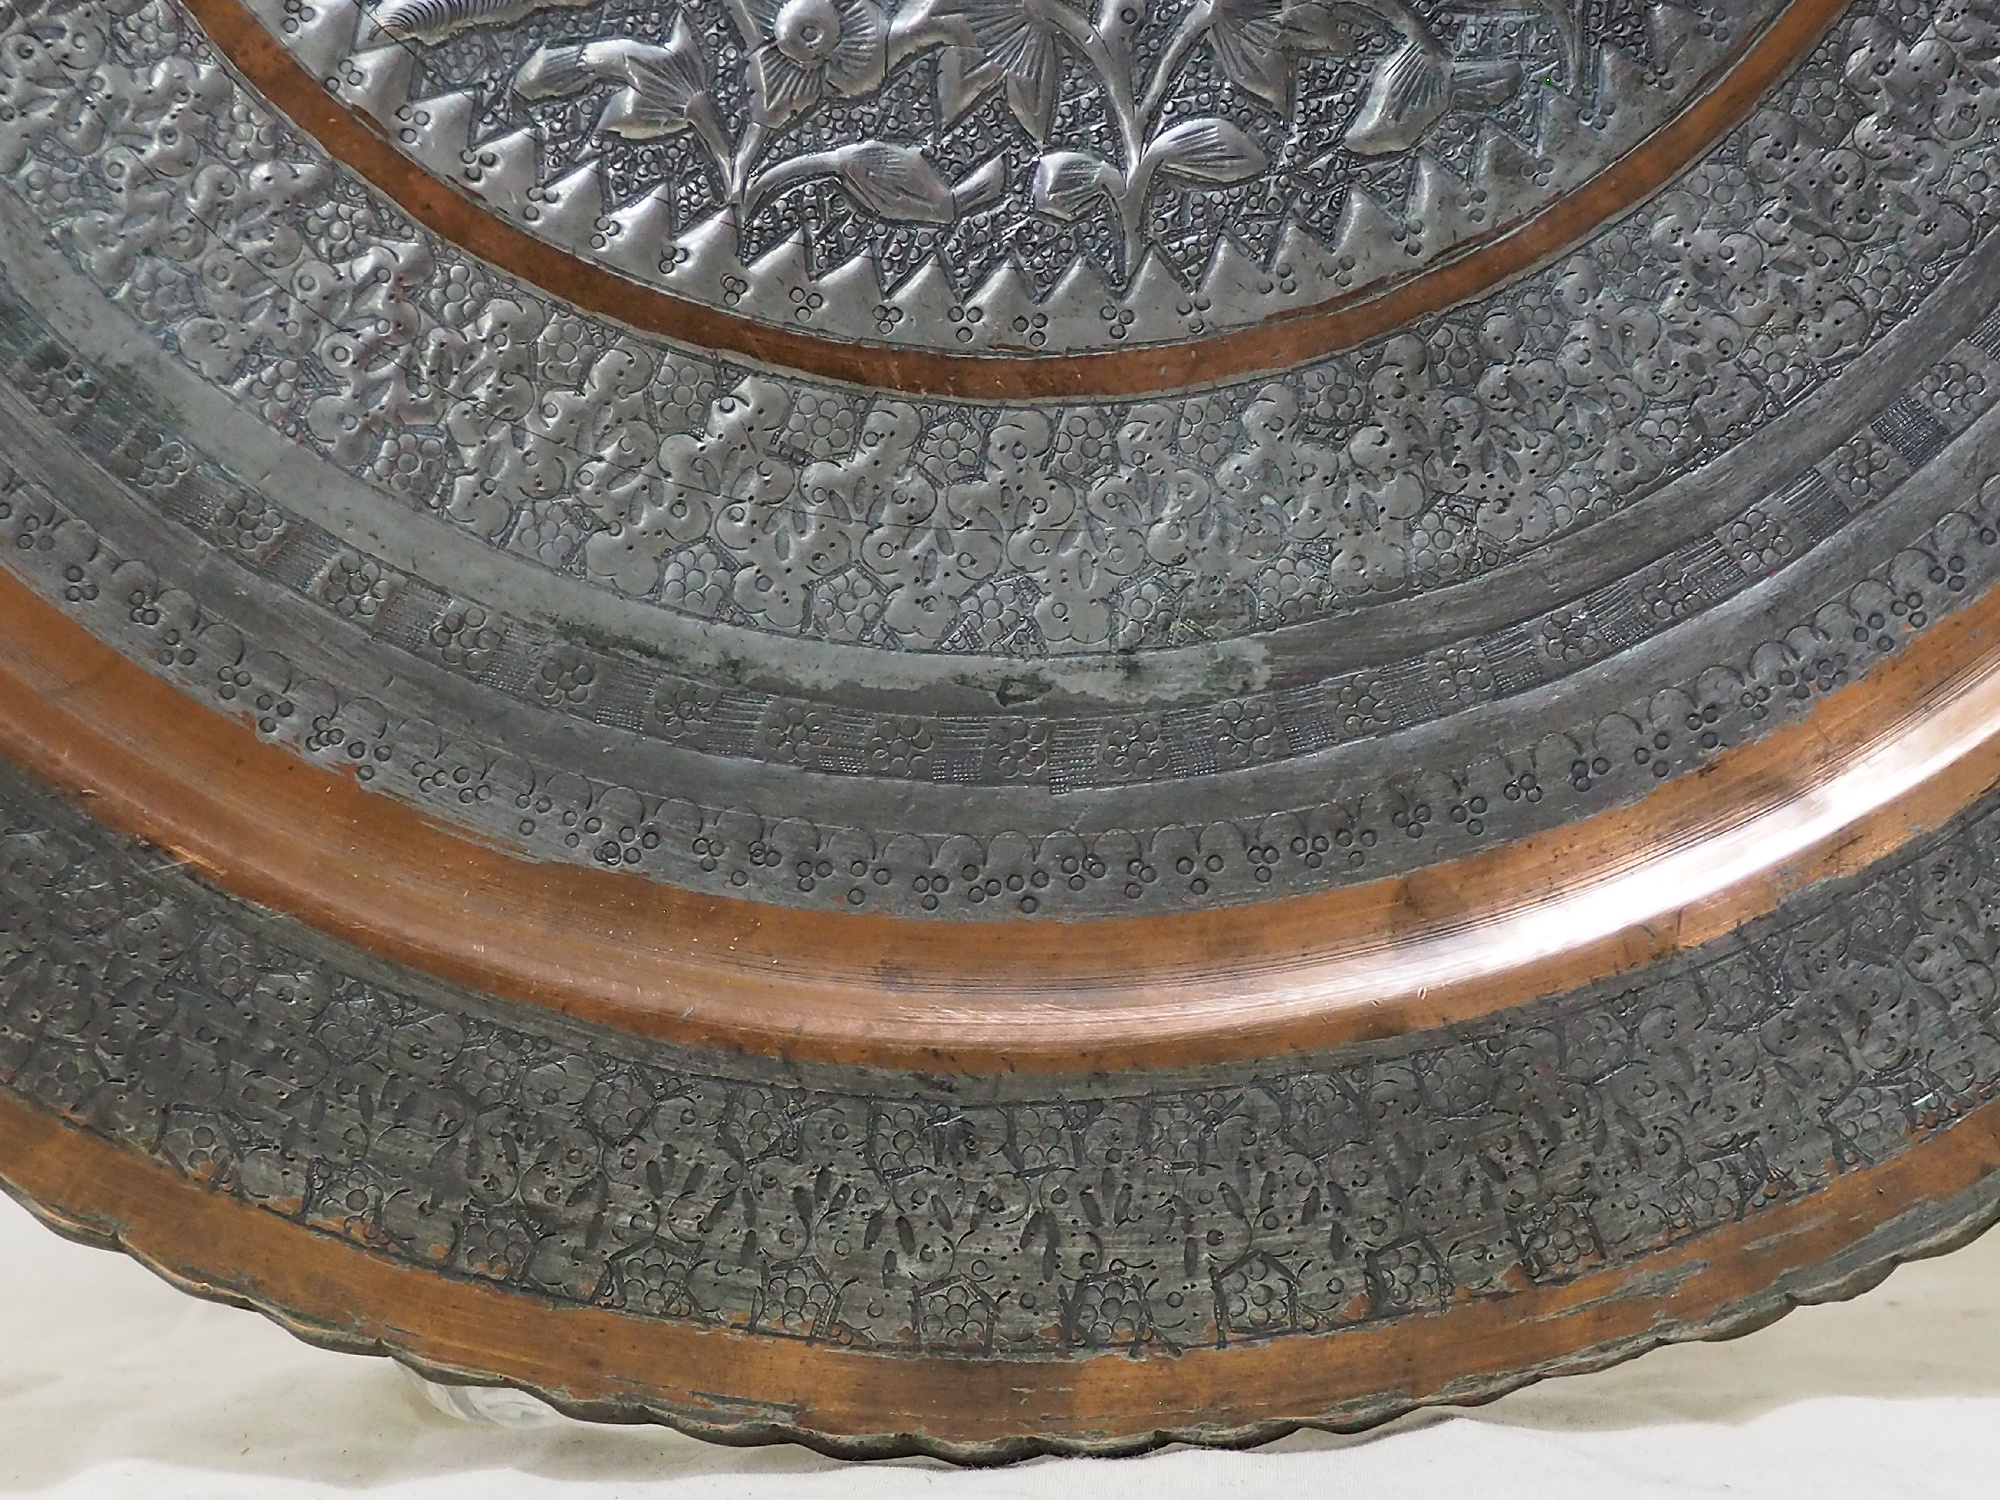 58 cm Antique ottoman orient Islamic  Hammer Engraved Brass table Tea table side table Tray from Afghanistan  No-21K